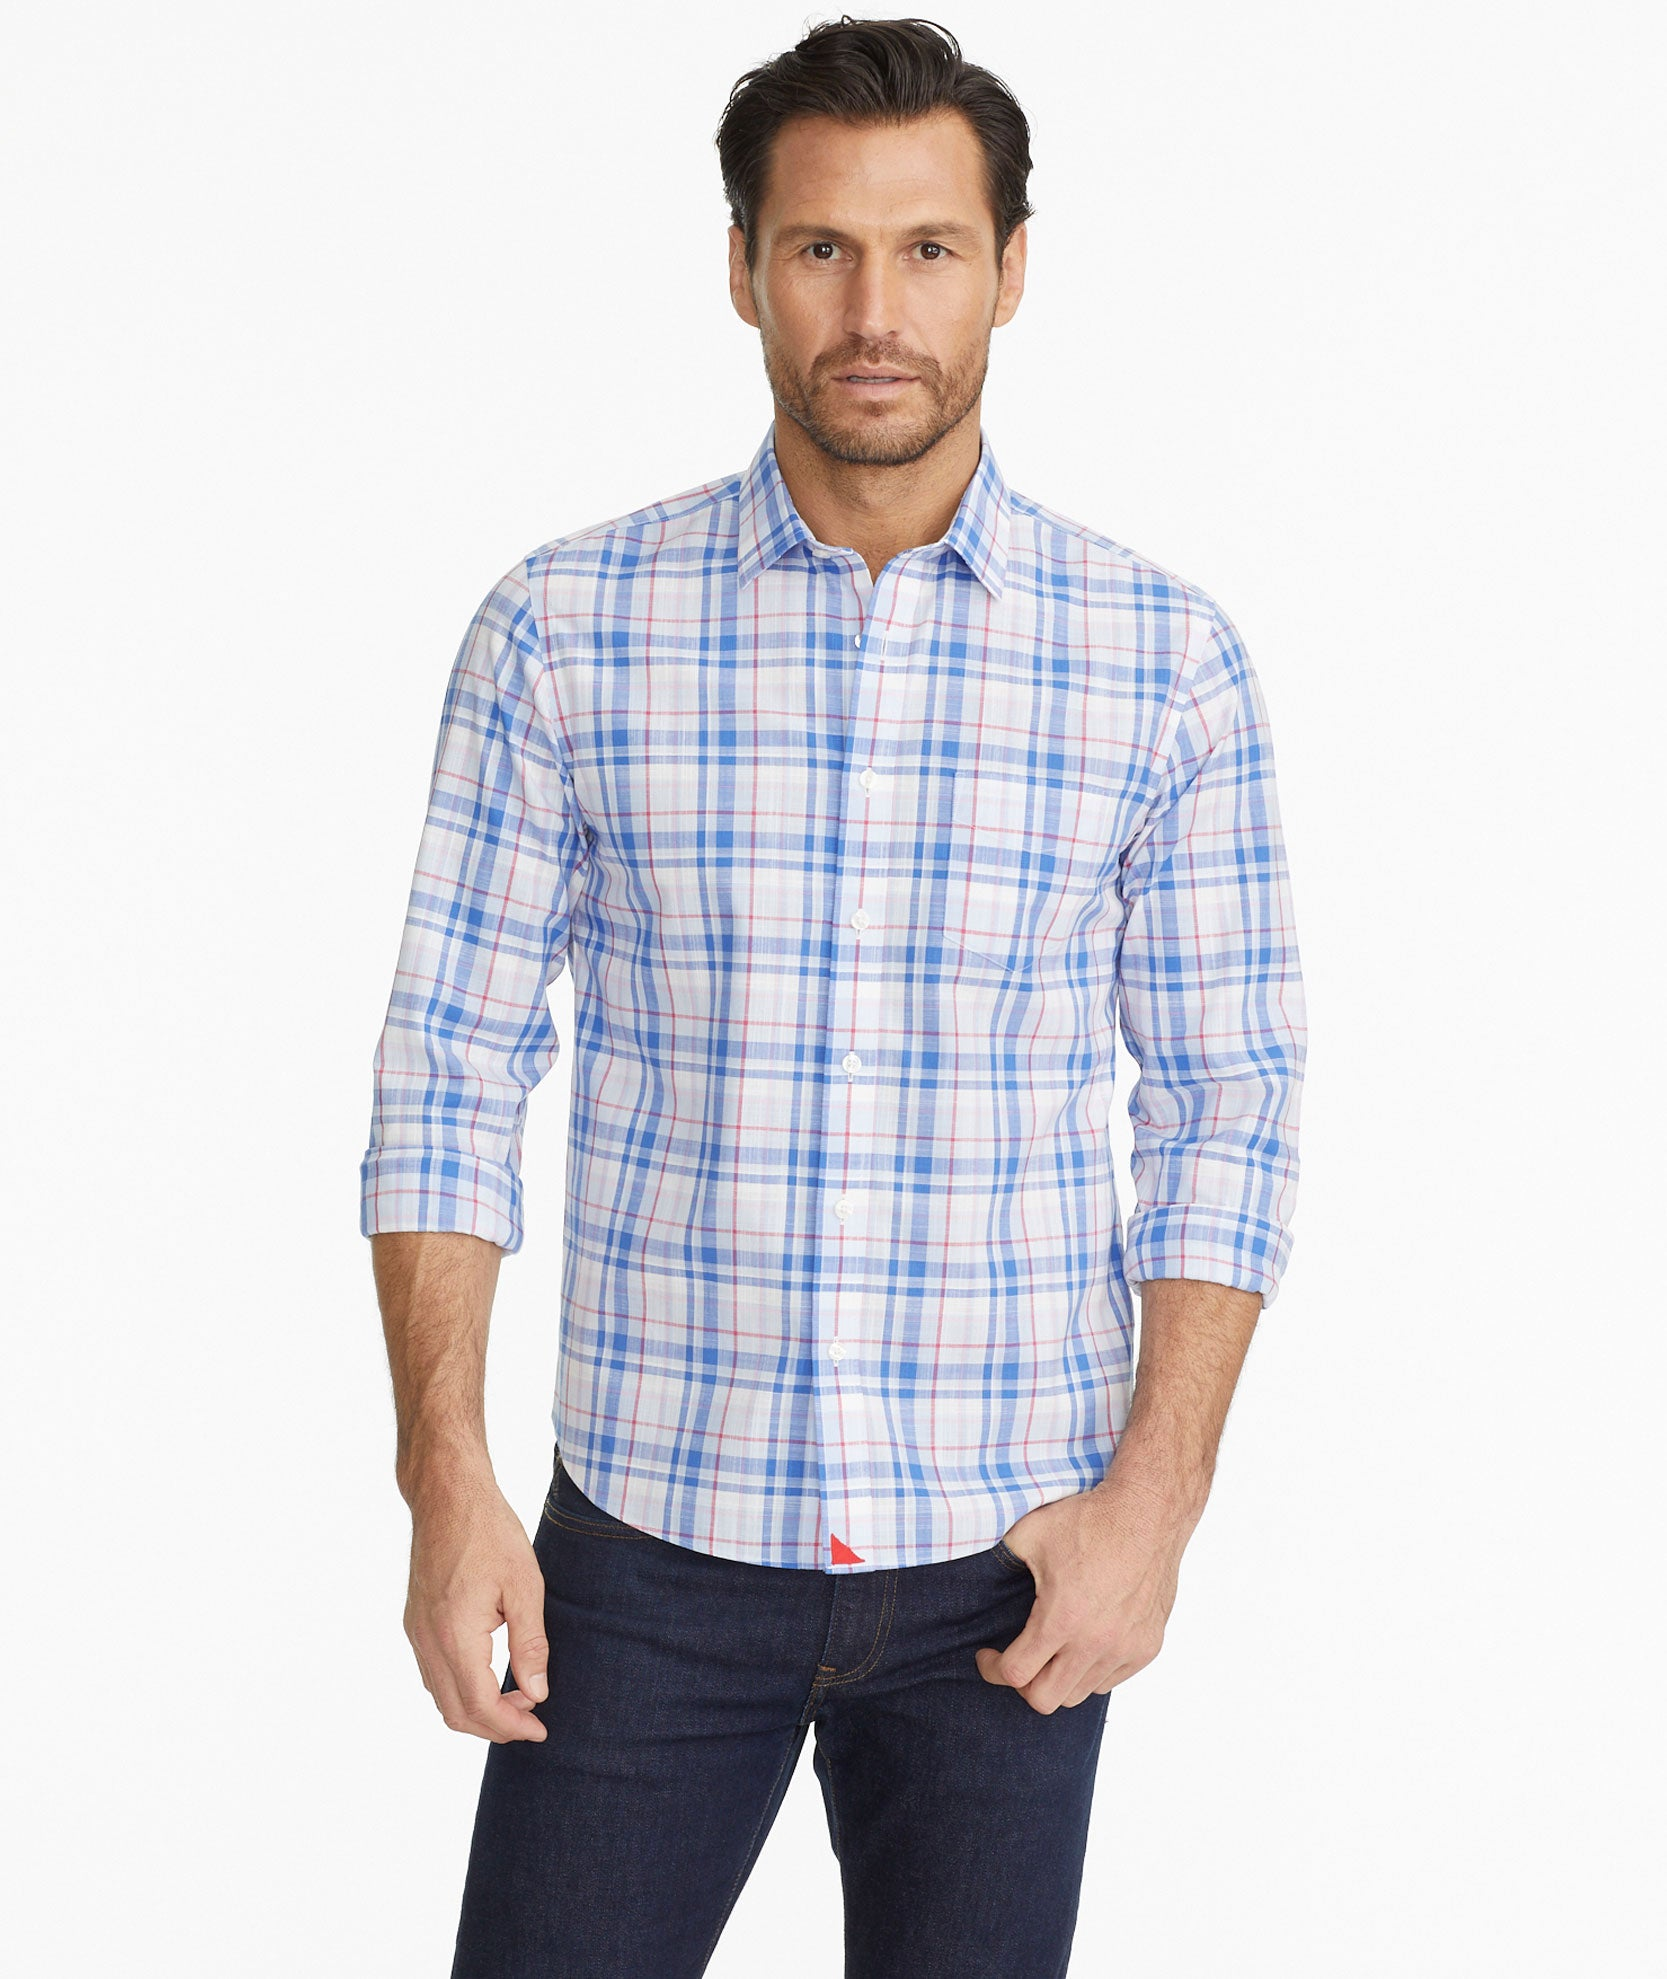 569b5fb6 Reynvaan Wrinkle Free Blue White & Red Plaid | UNTUCKit